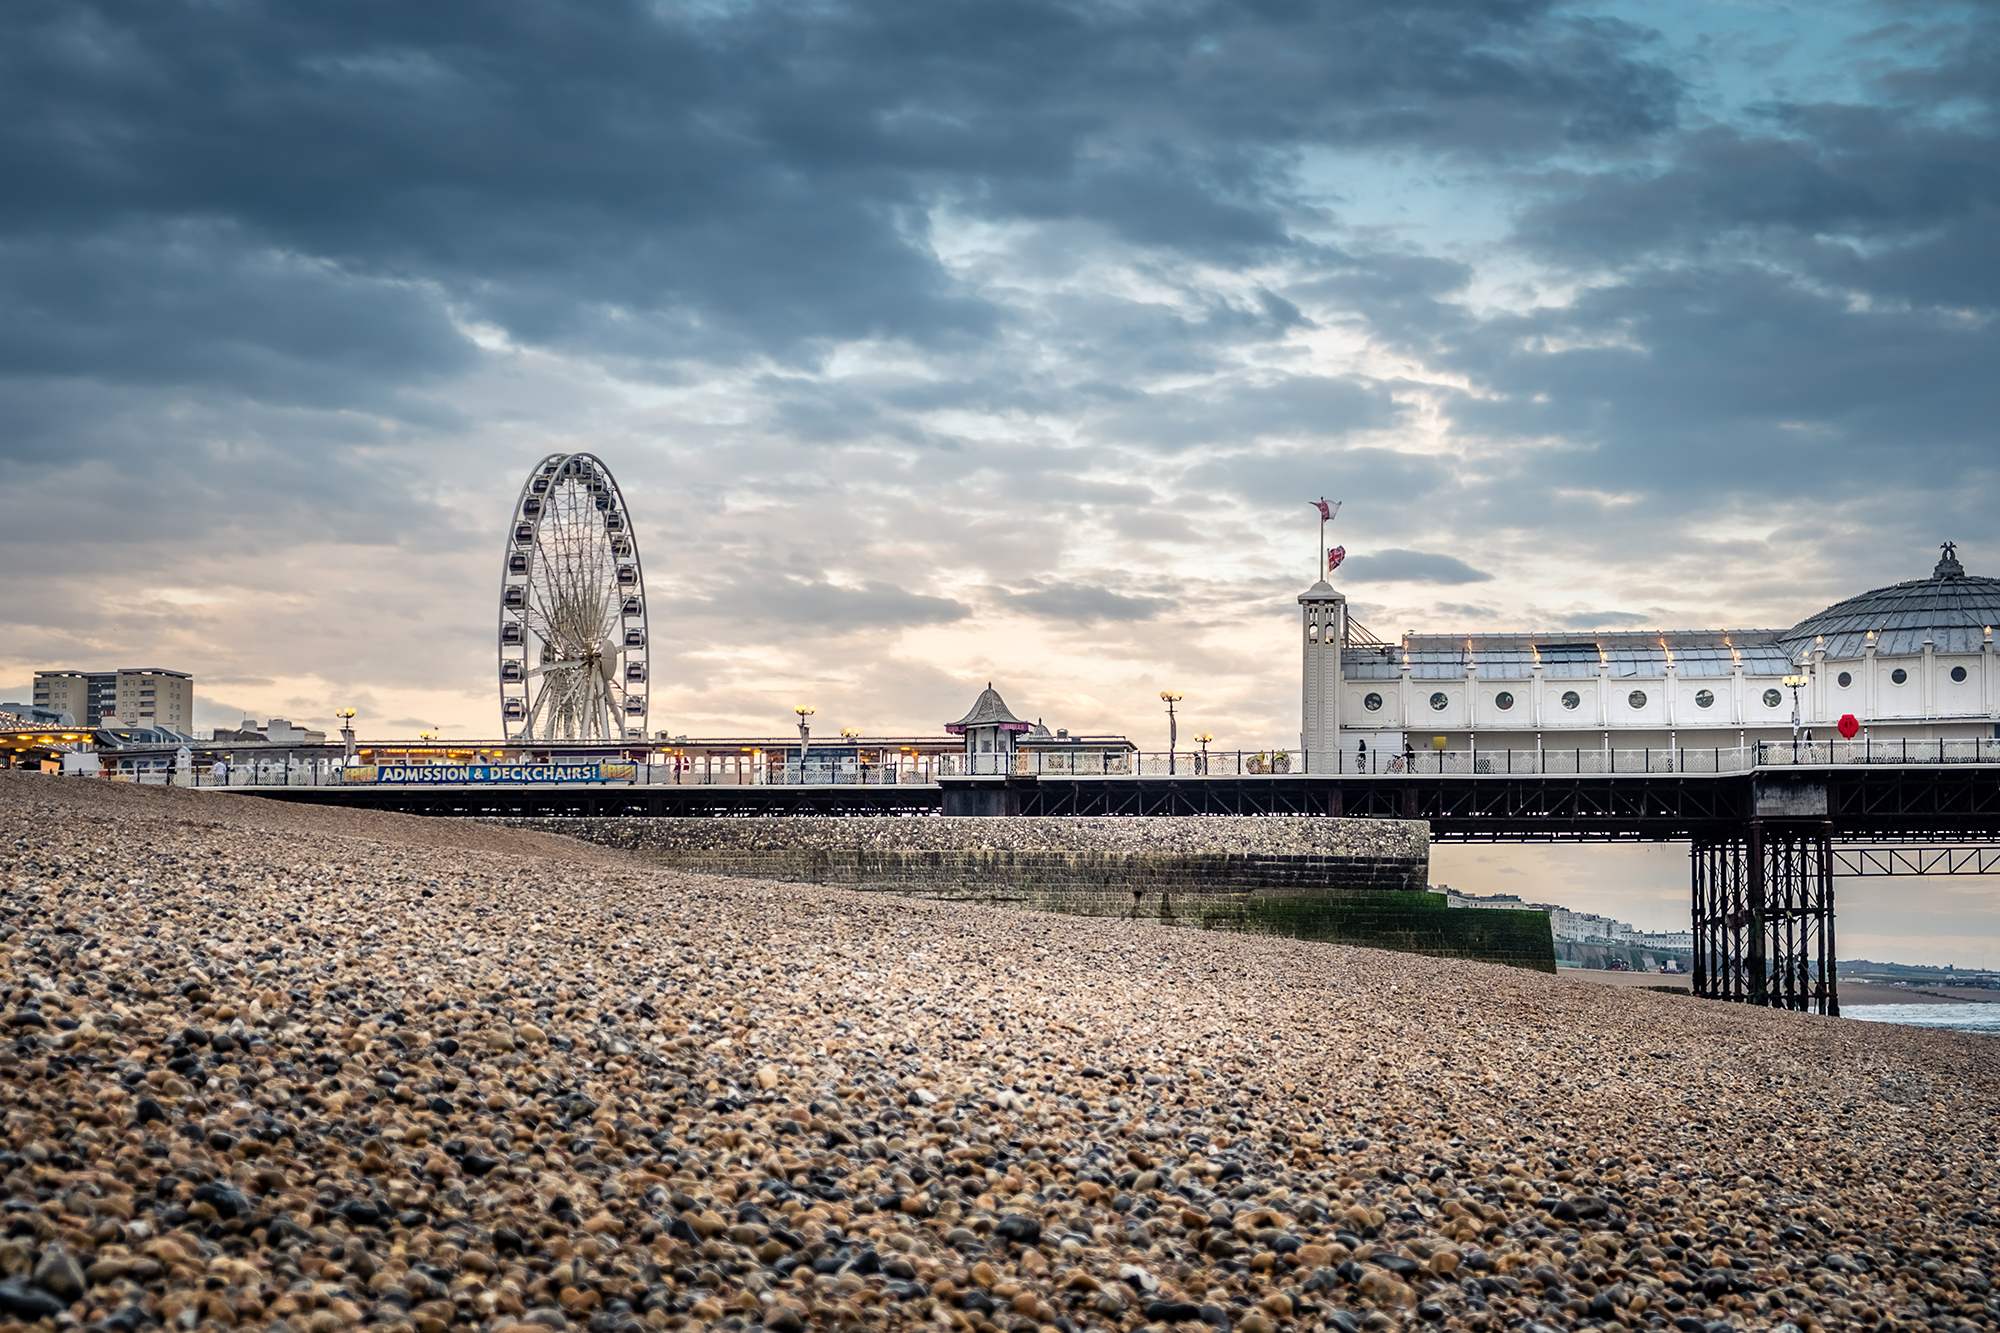 Landscape photo of Palace Pier in Brighton, England by Trevor Sherwin